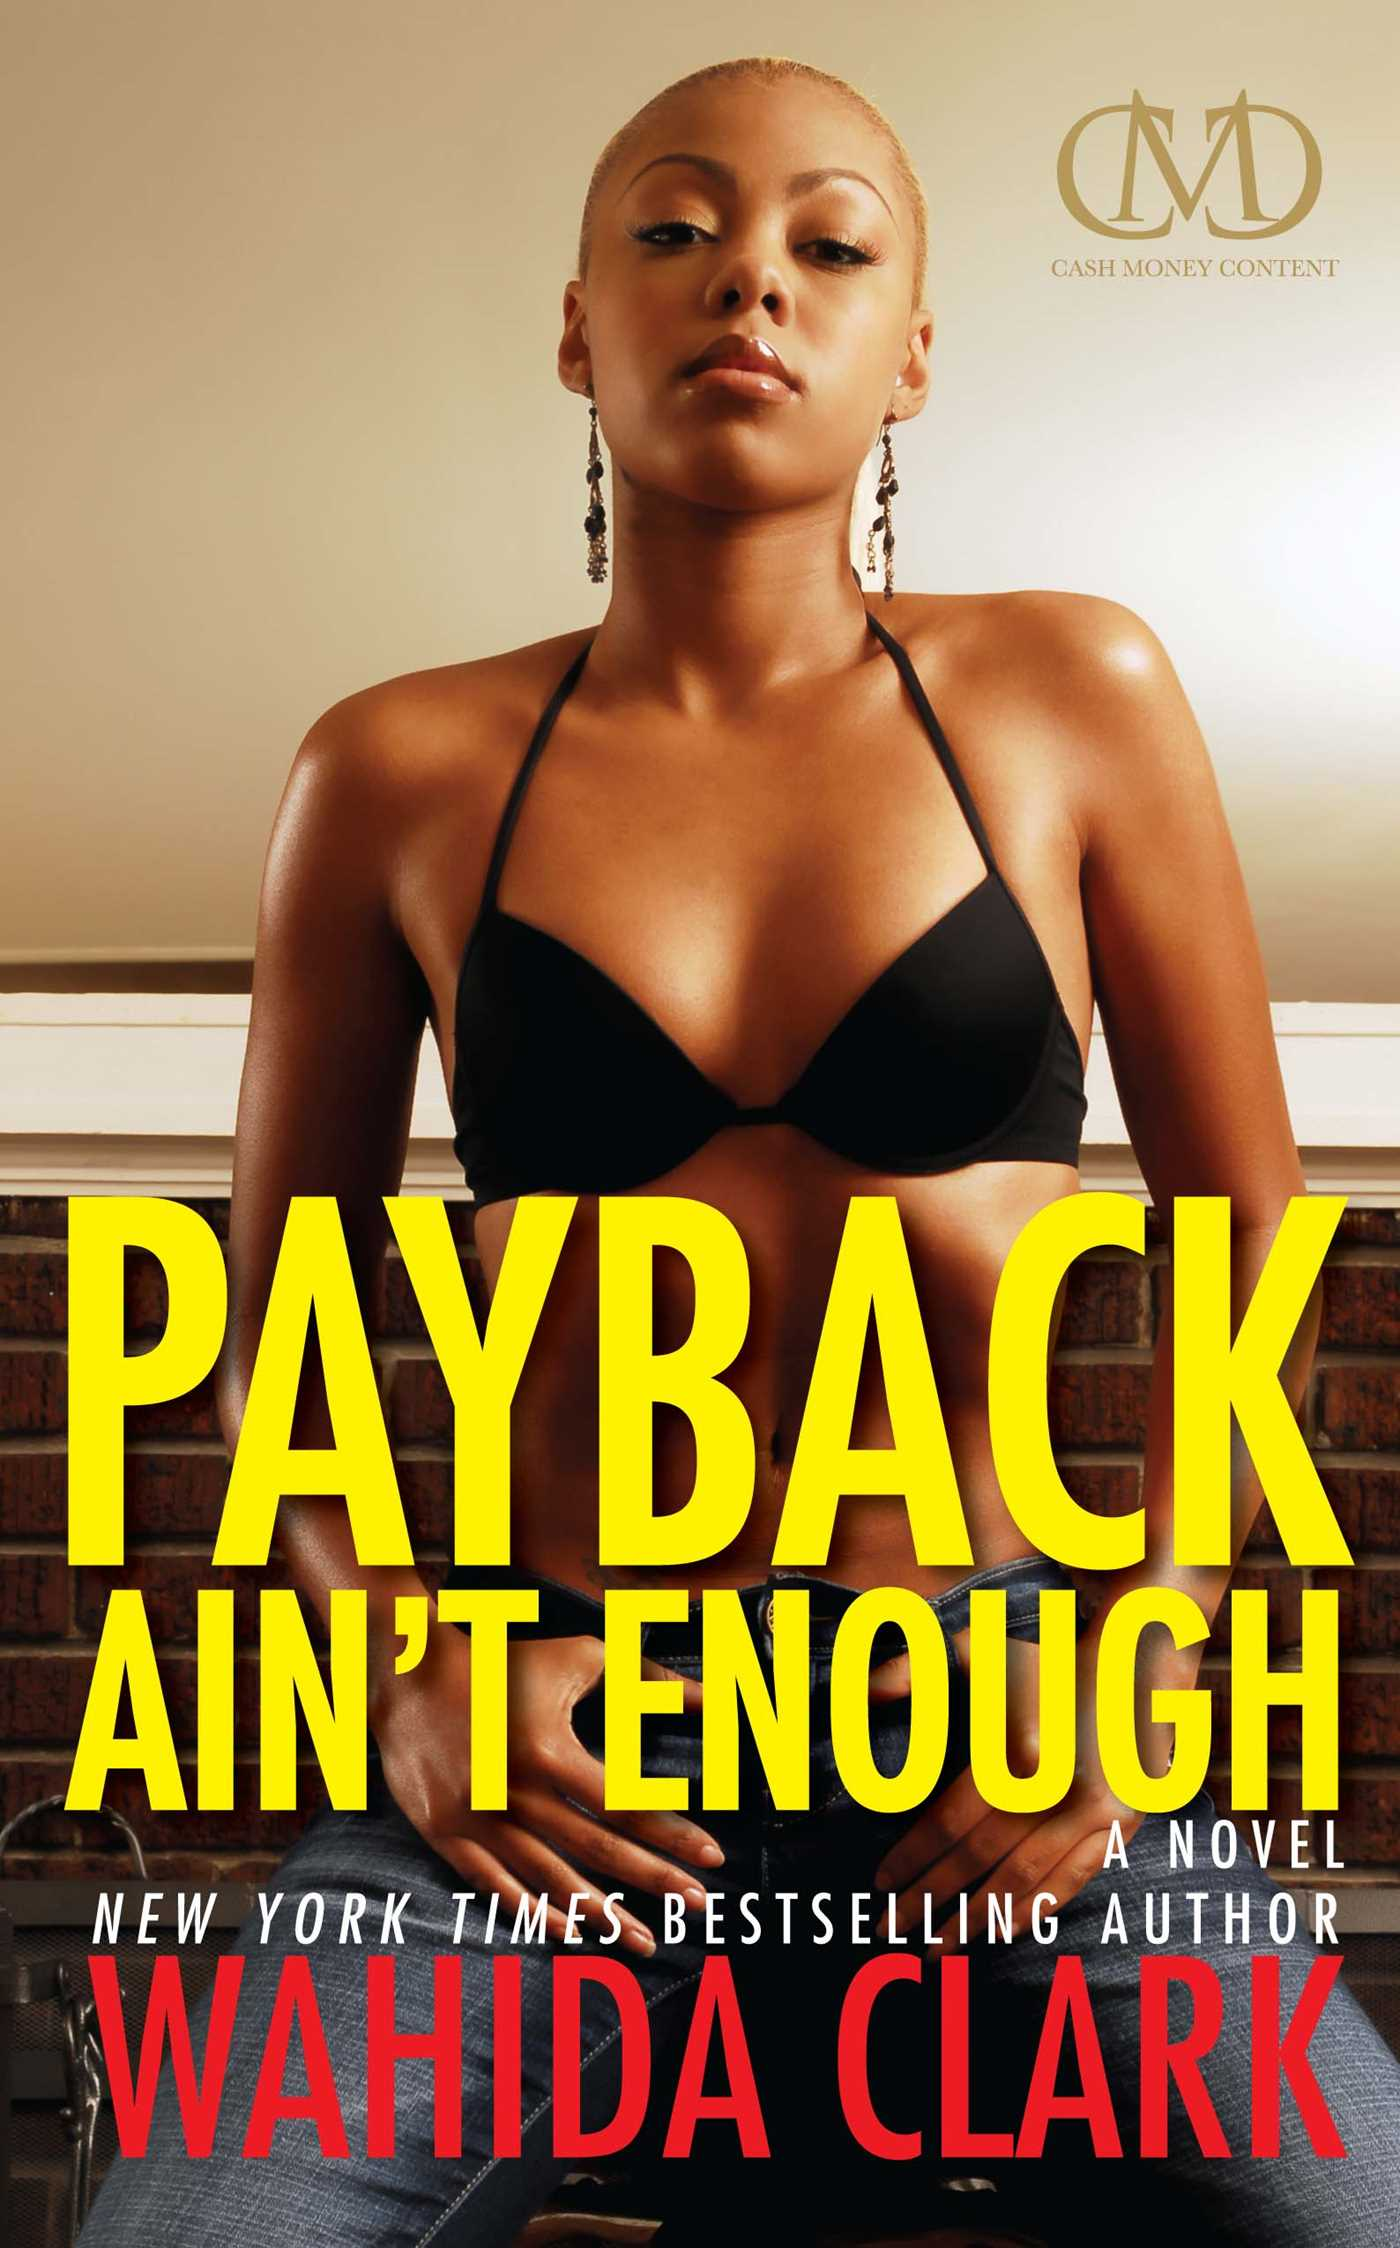 Payback-aint-enough-9781936399116_hr